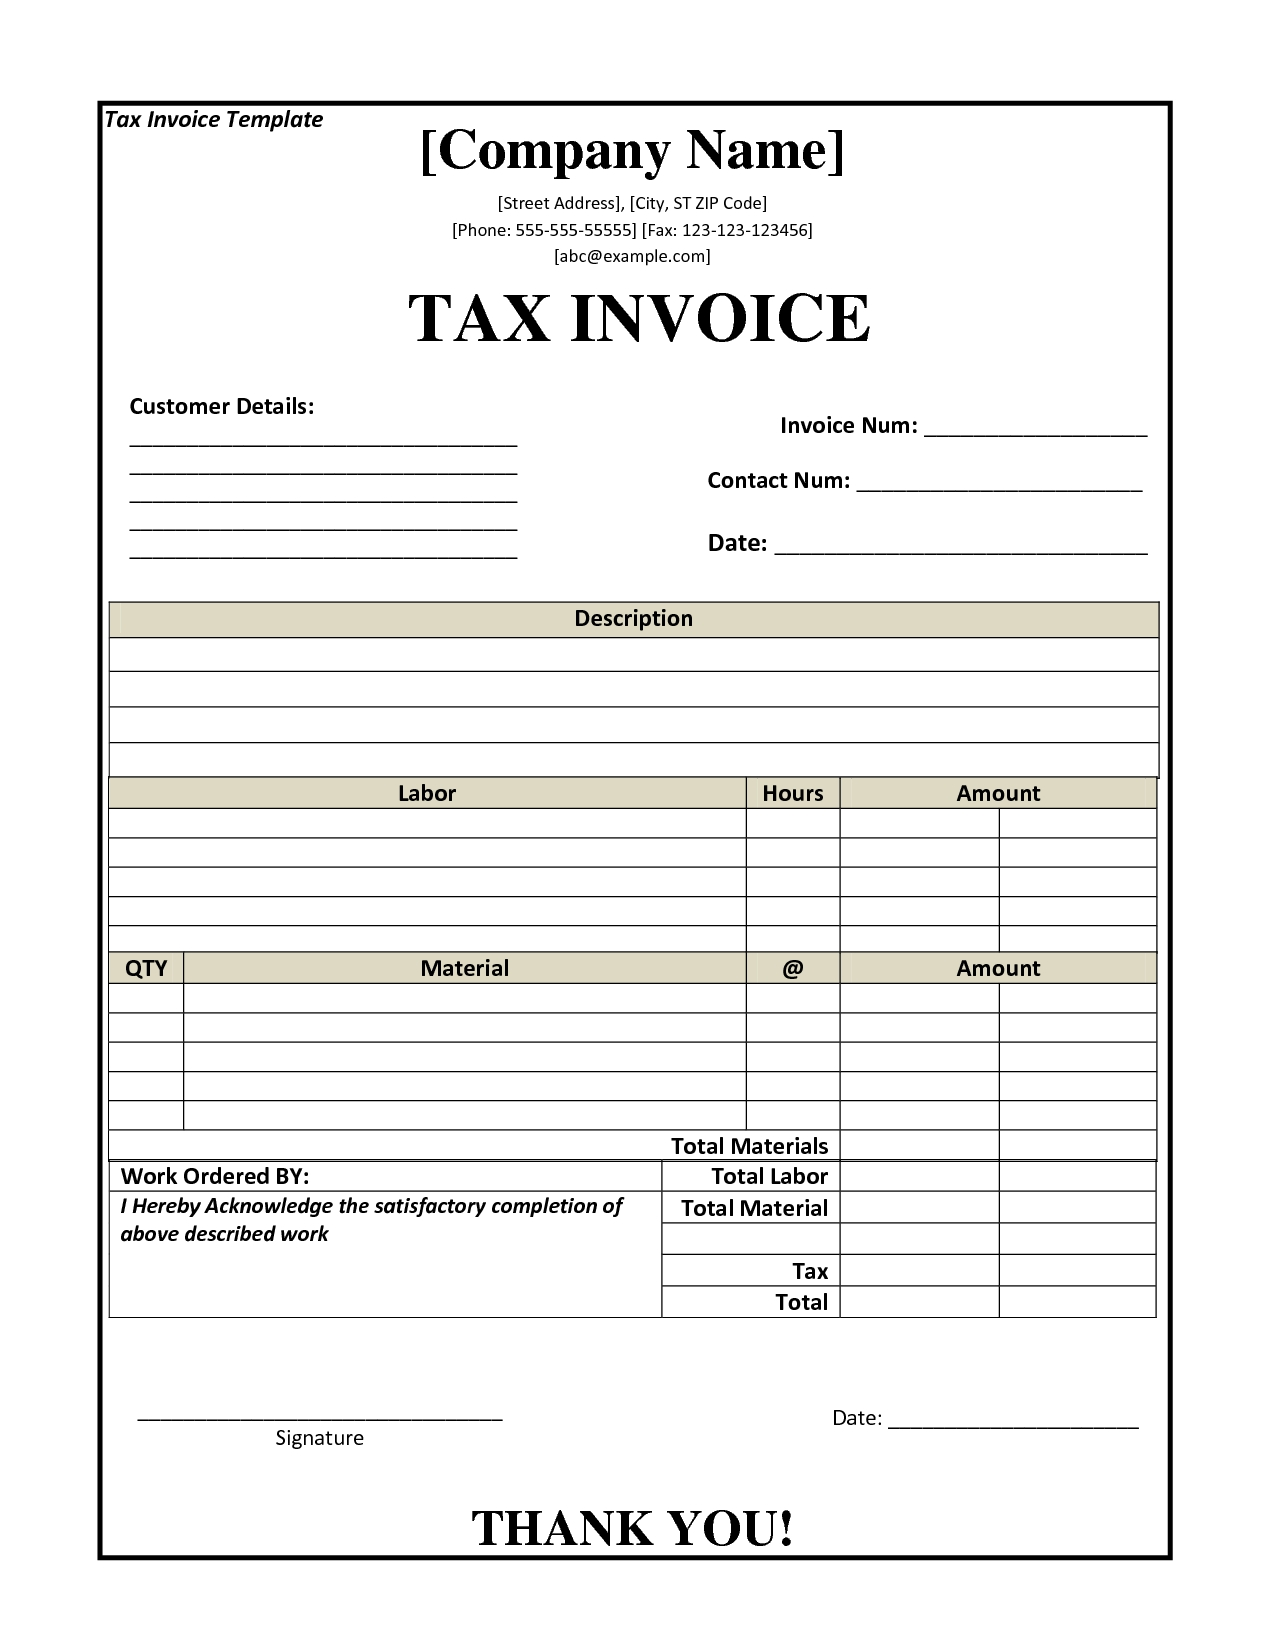 basic tax invoice template invoice template ideas simple invoice sample simple invoice template excel design basic tax invoice template